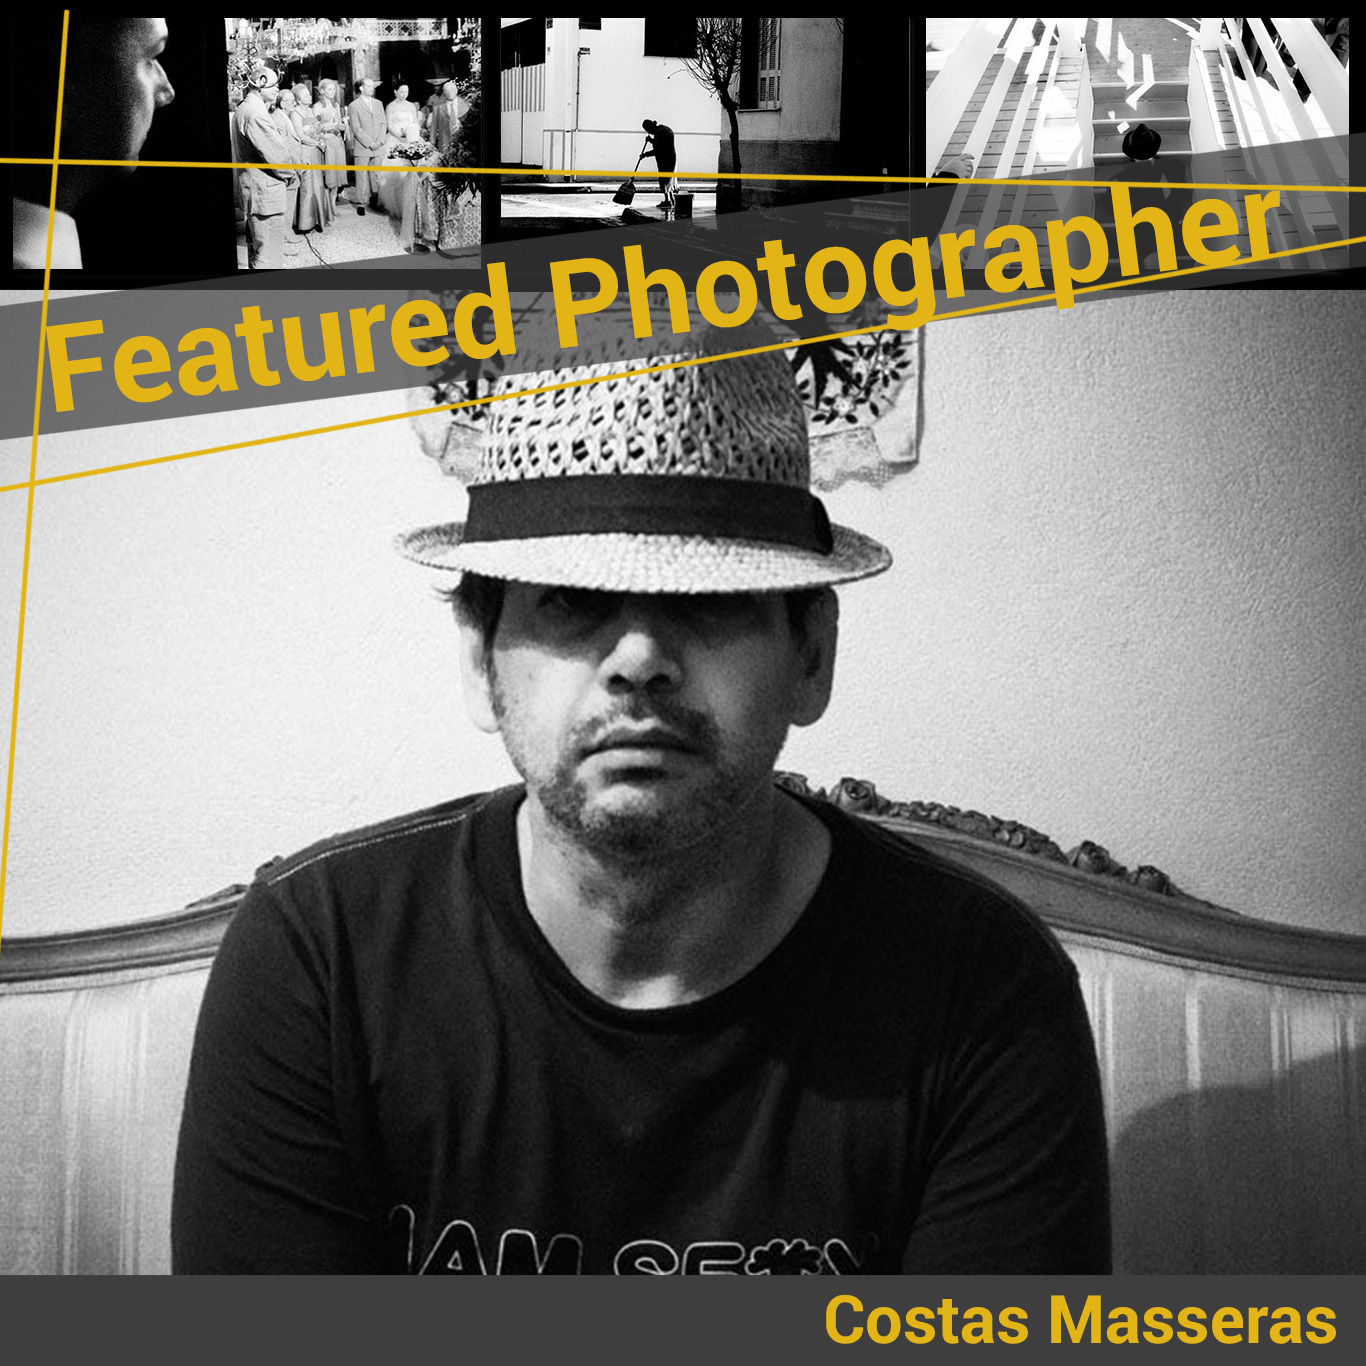 costas masseras featured